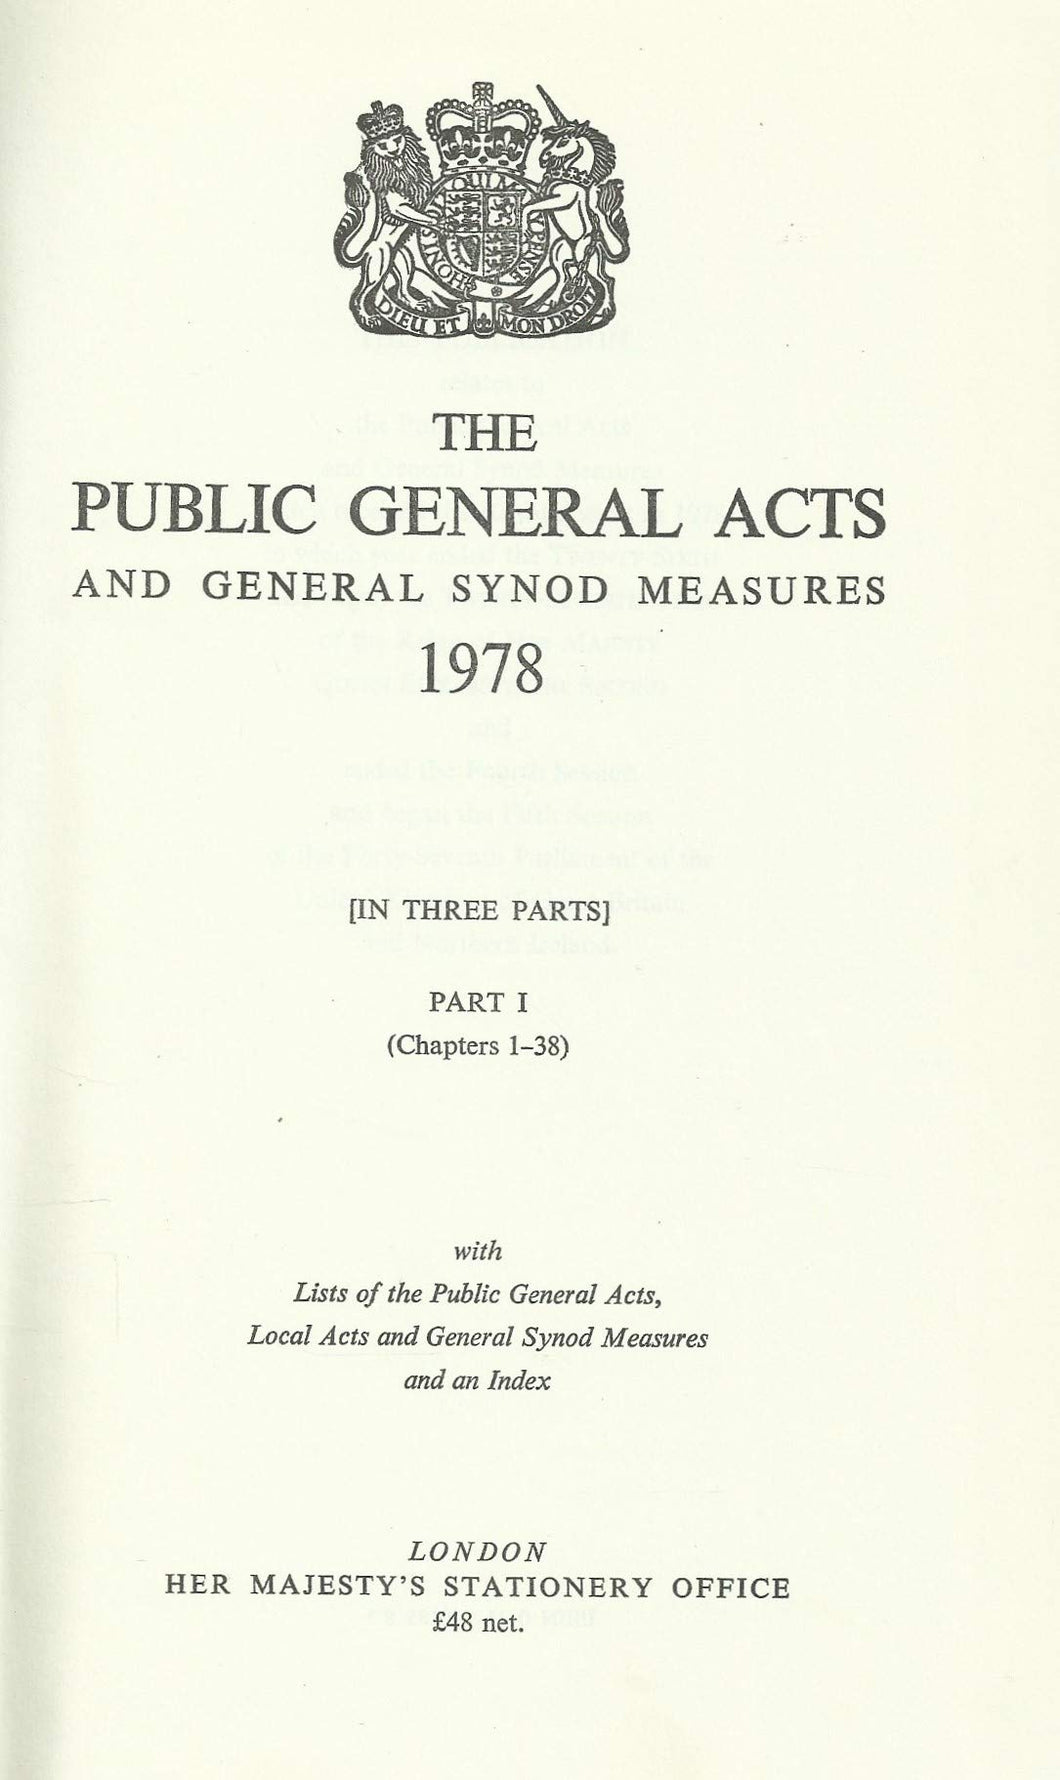 The public general acts and General Synod measures